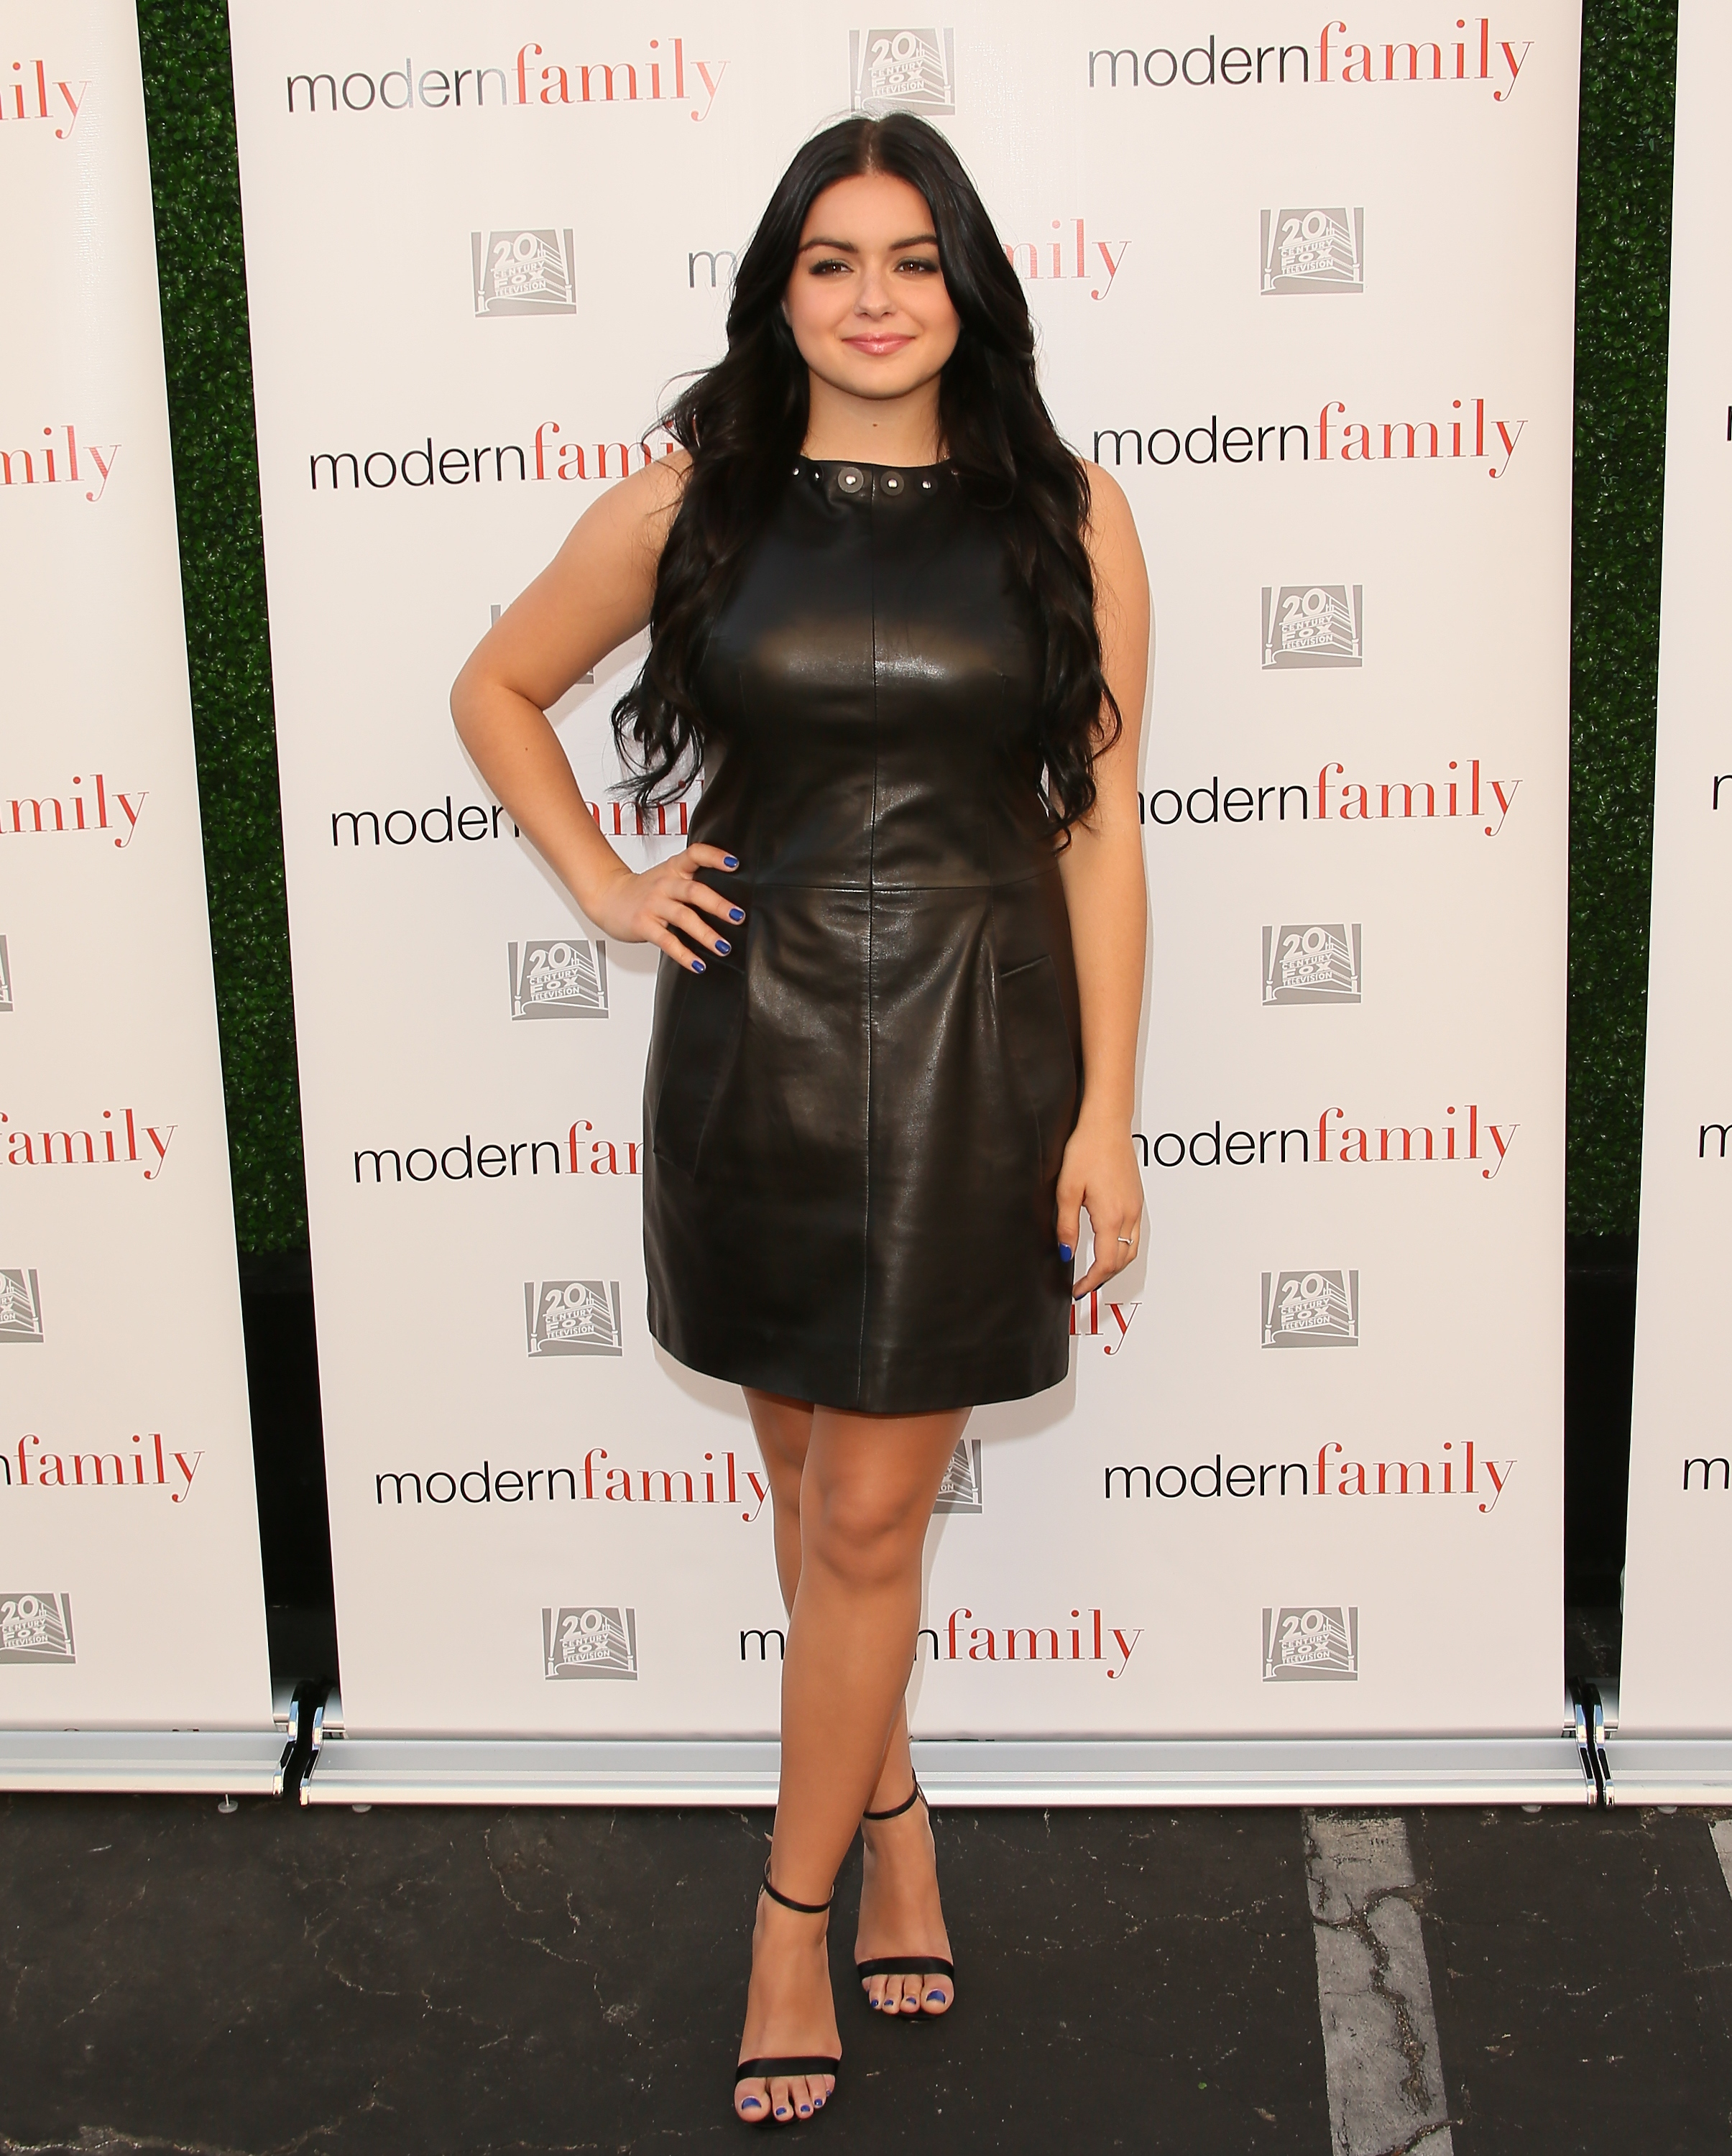 Ariel Winter attends the ATAS Screening of the 'Modern Family' Season Finale 'American Skyper' at the Fox Studio Lot on May 18, 2015 in Century City, California.